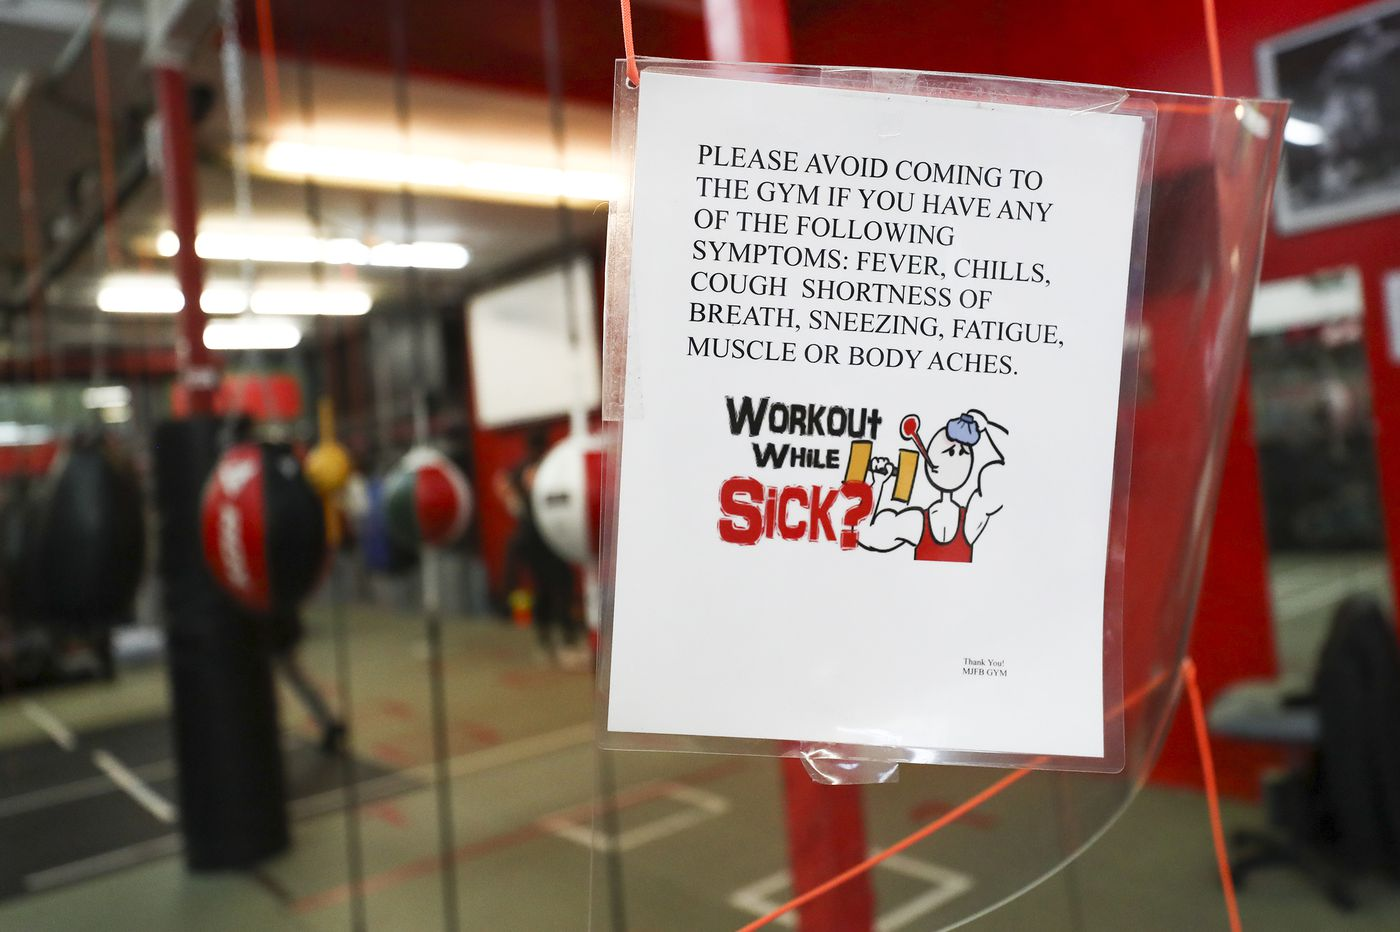 Gyms and fitness studios need clear guidelines to stay open and survive the pandemic   Opinion